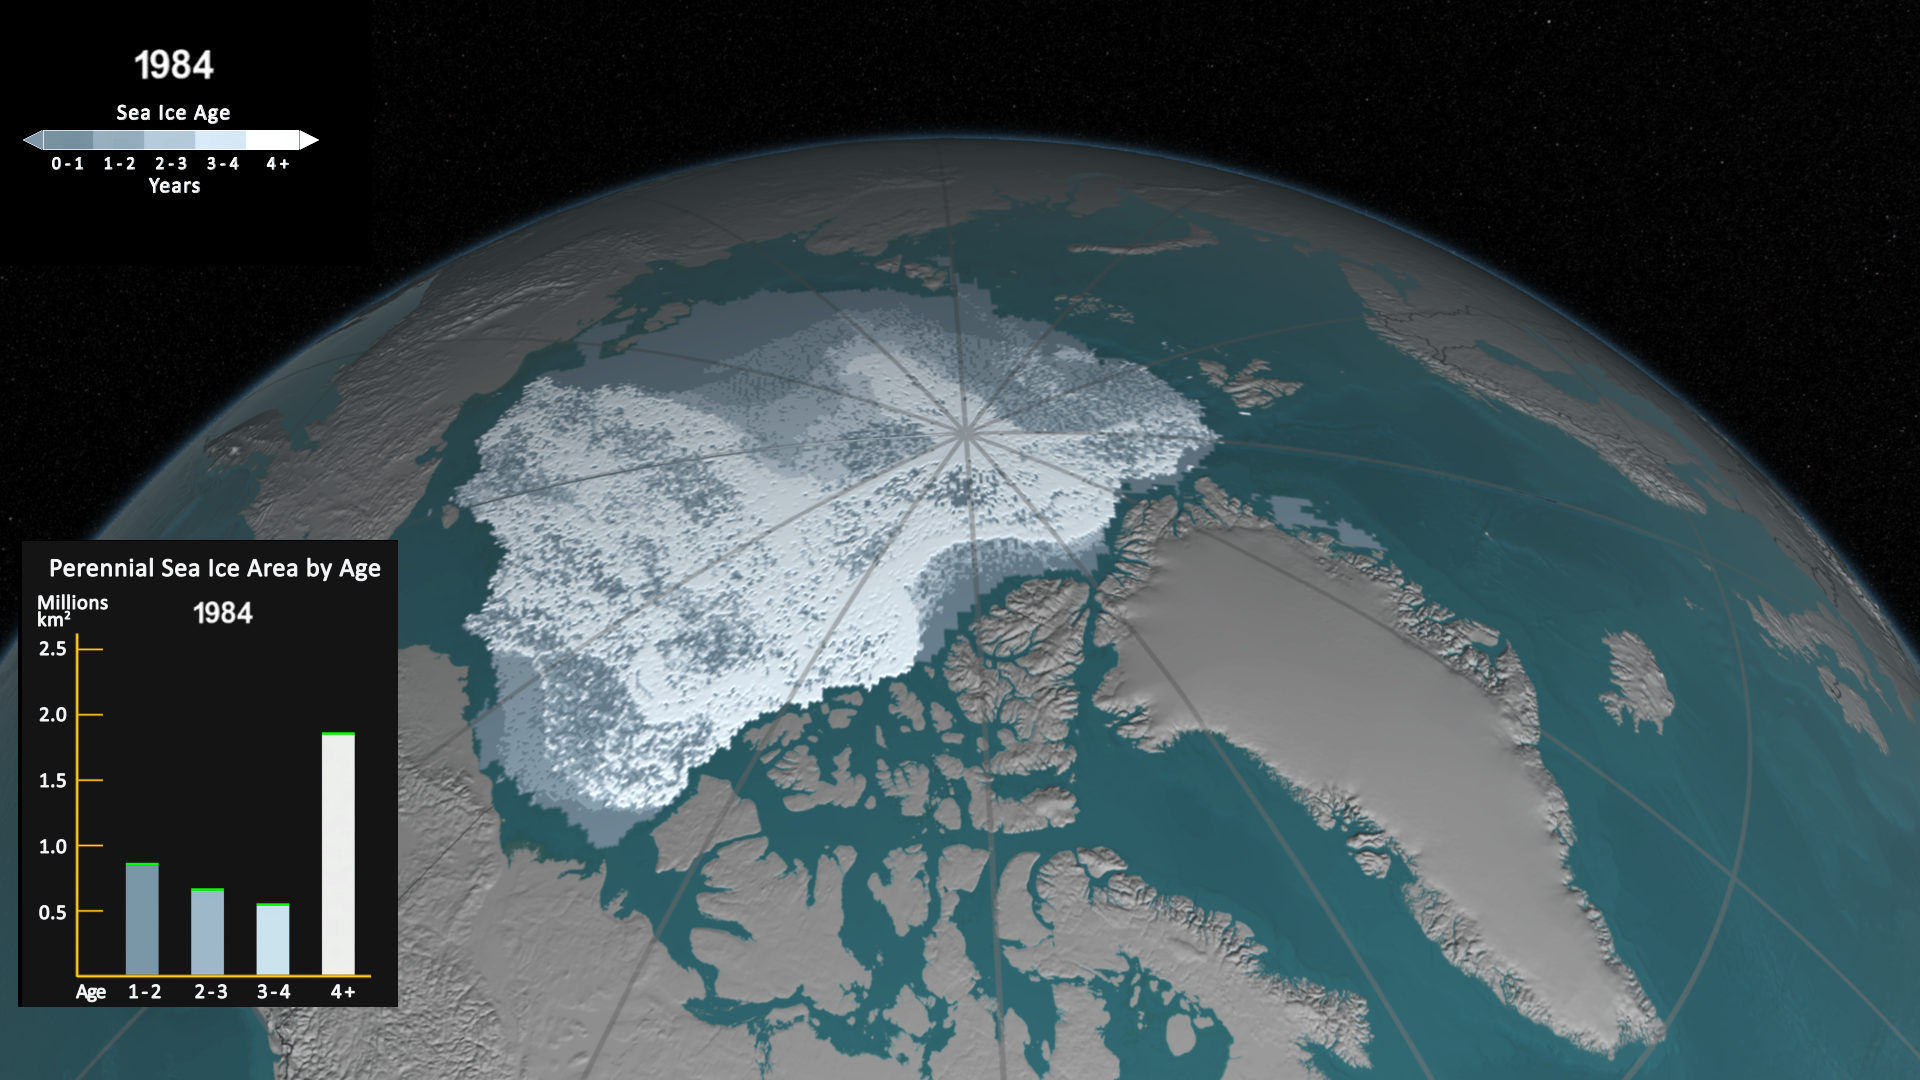 Perennial Sea Ice Area by Age 1984